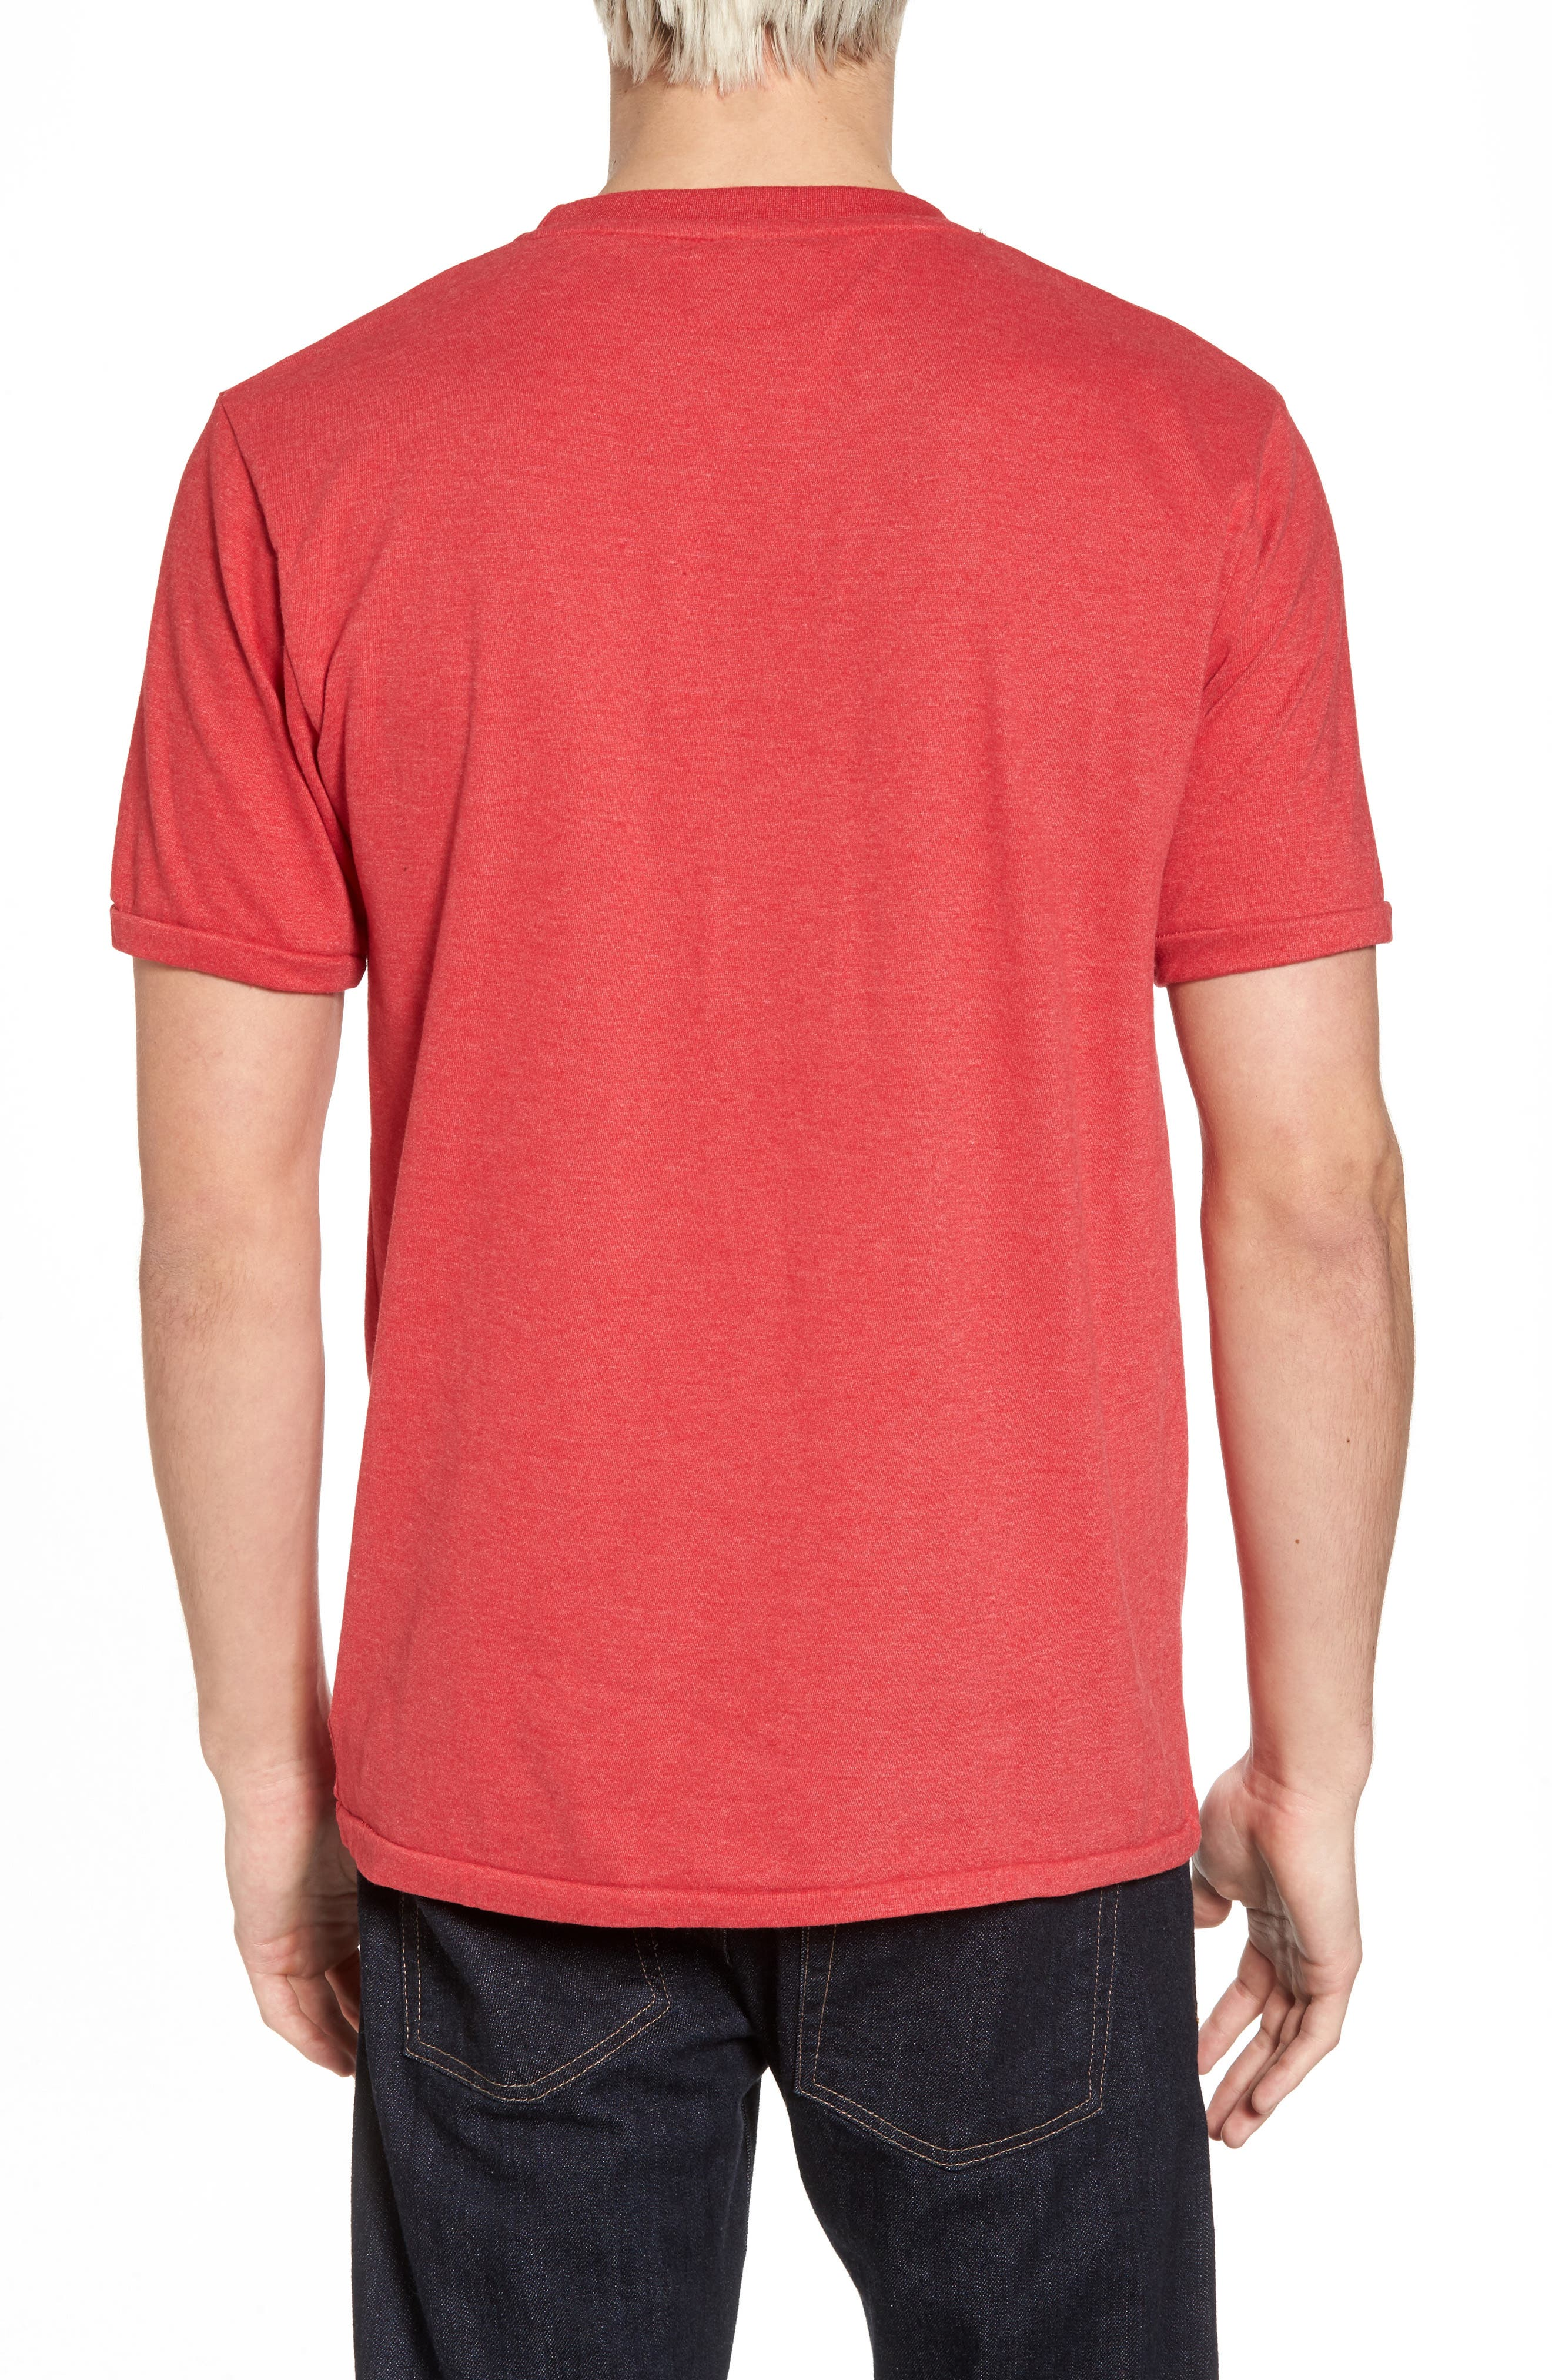 Hillwood Red Wings T-Shirt,                             Alternate thumbnail 2, color,